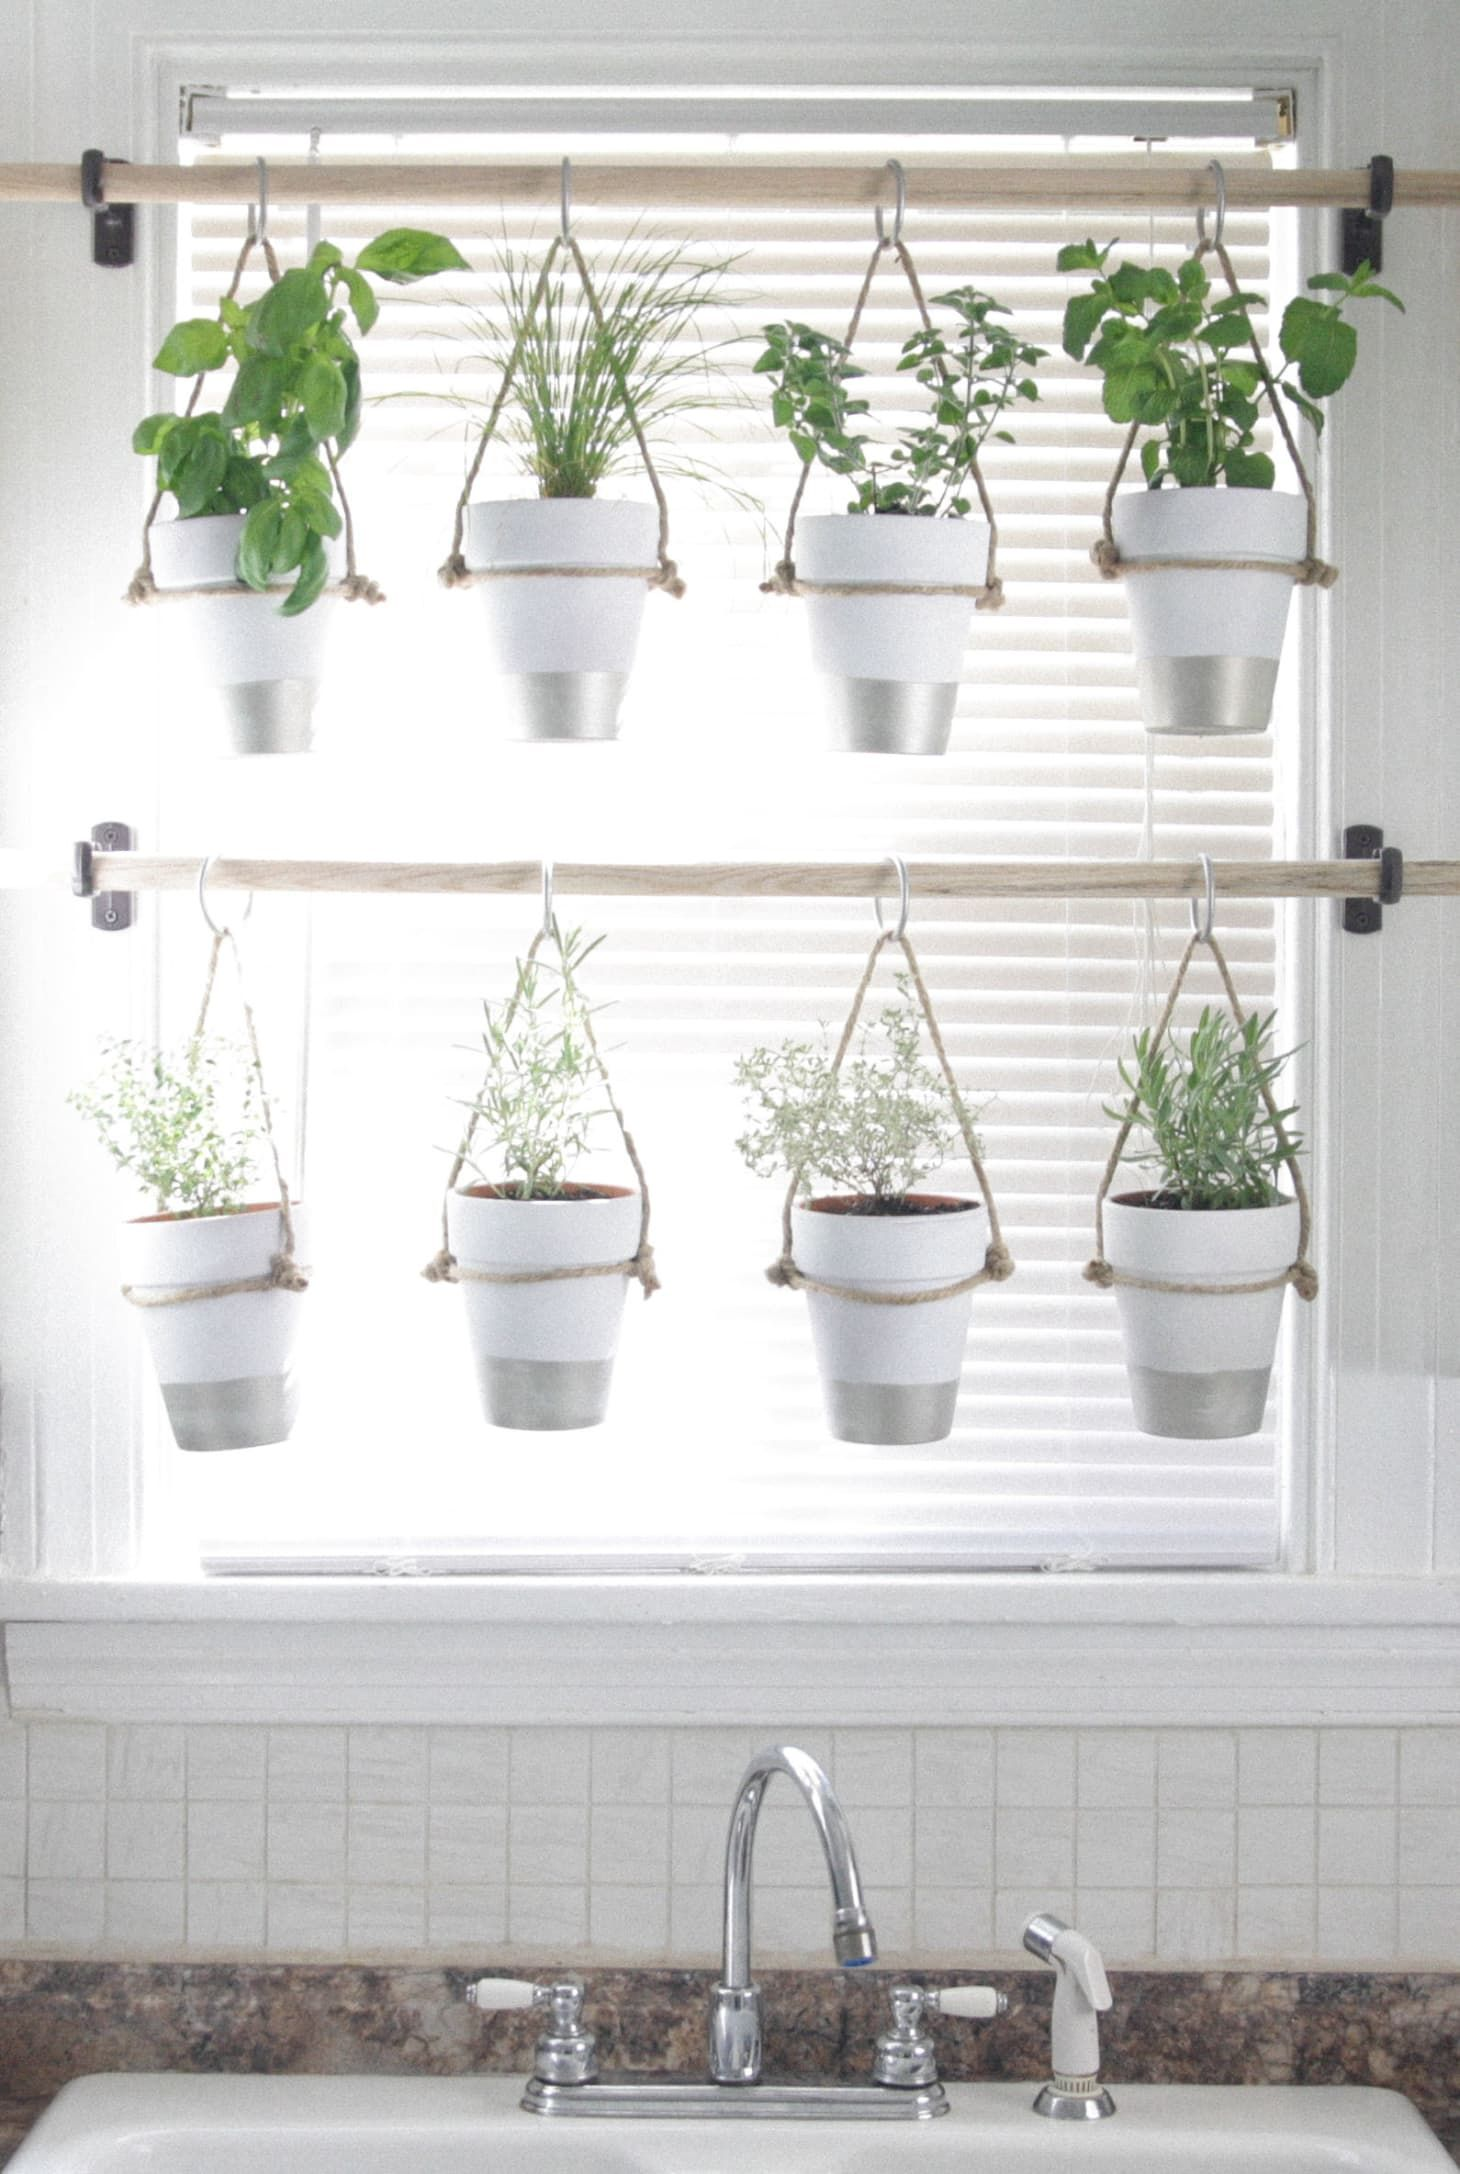 14 Ways To Grow Indoor Herbs Right In Your Kitchen With Images